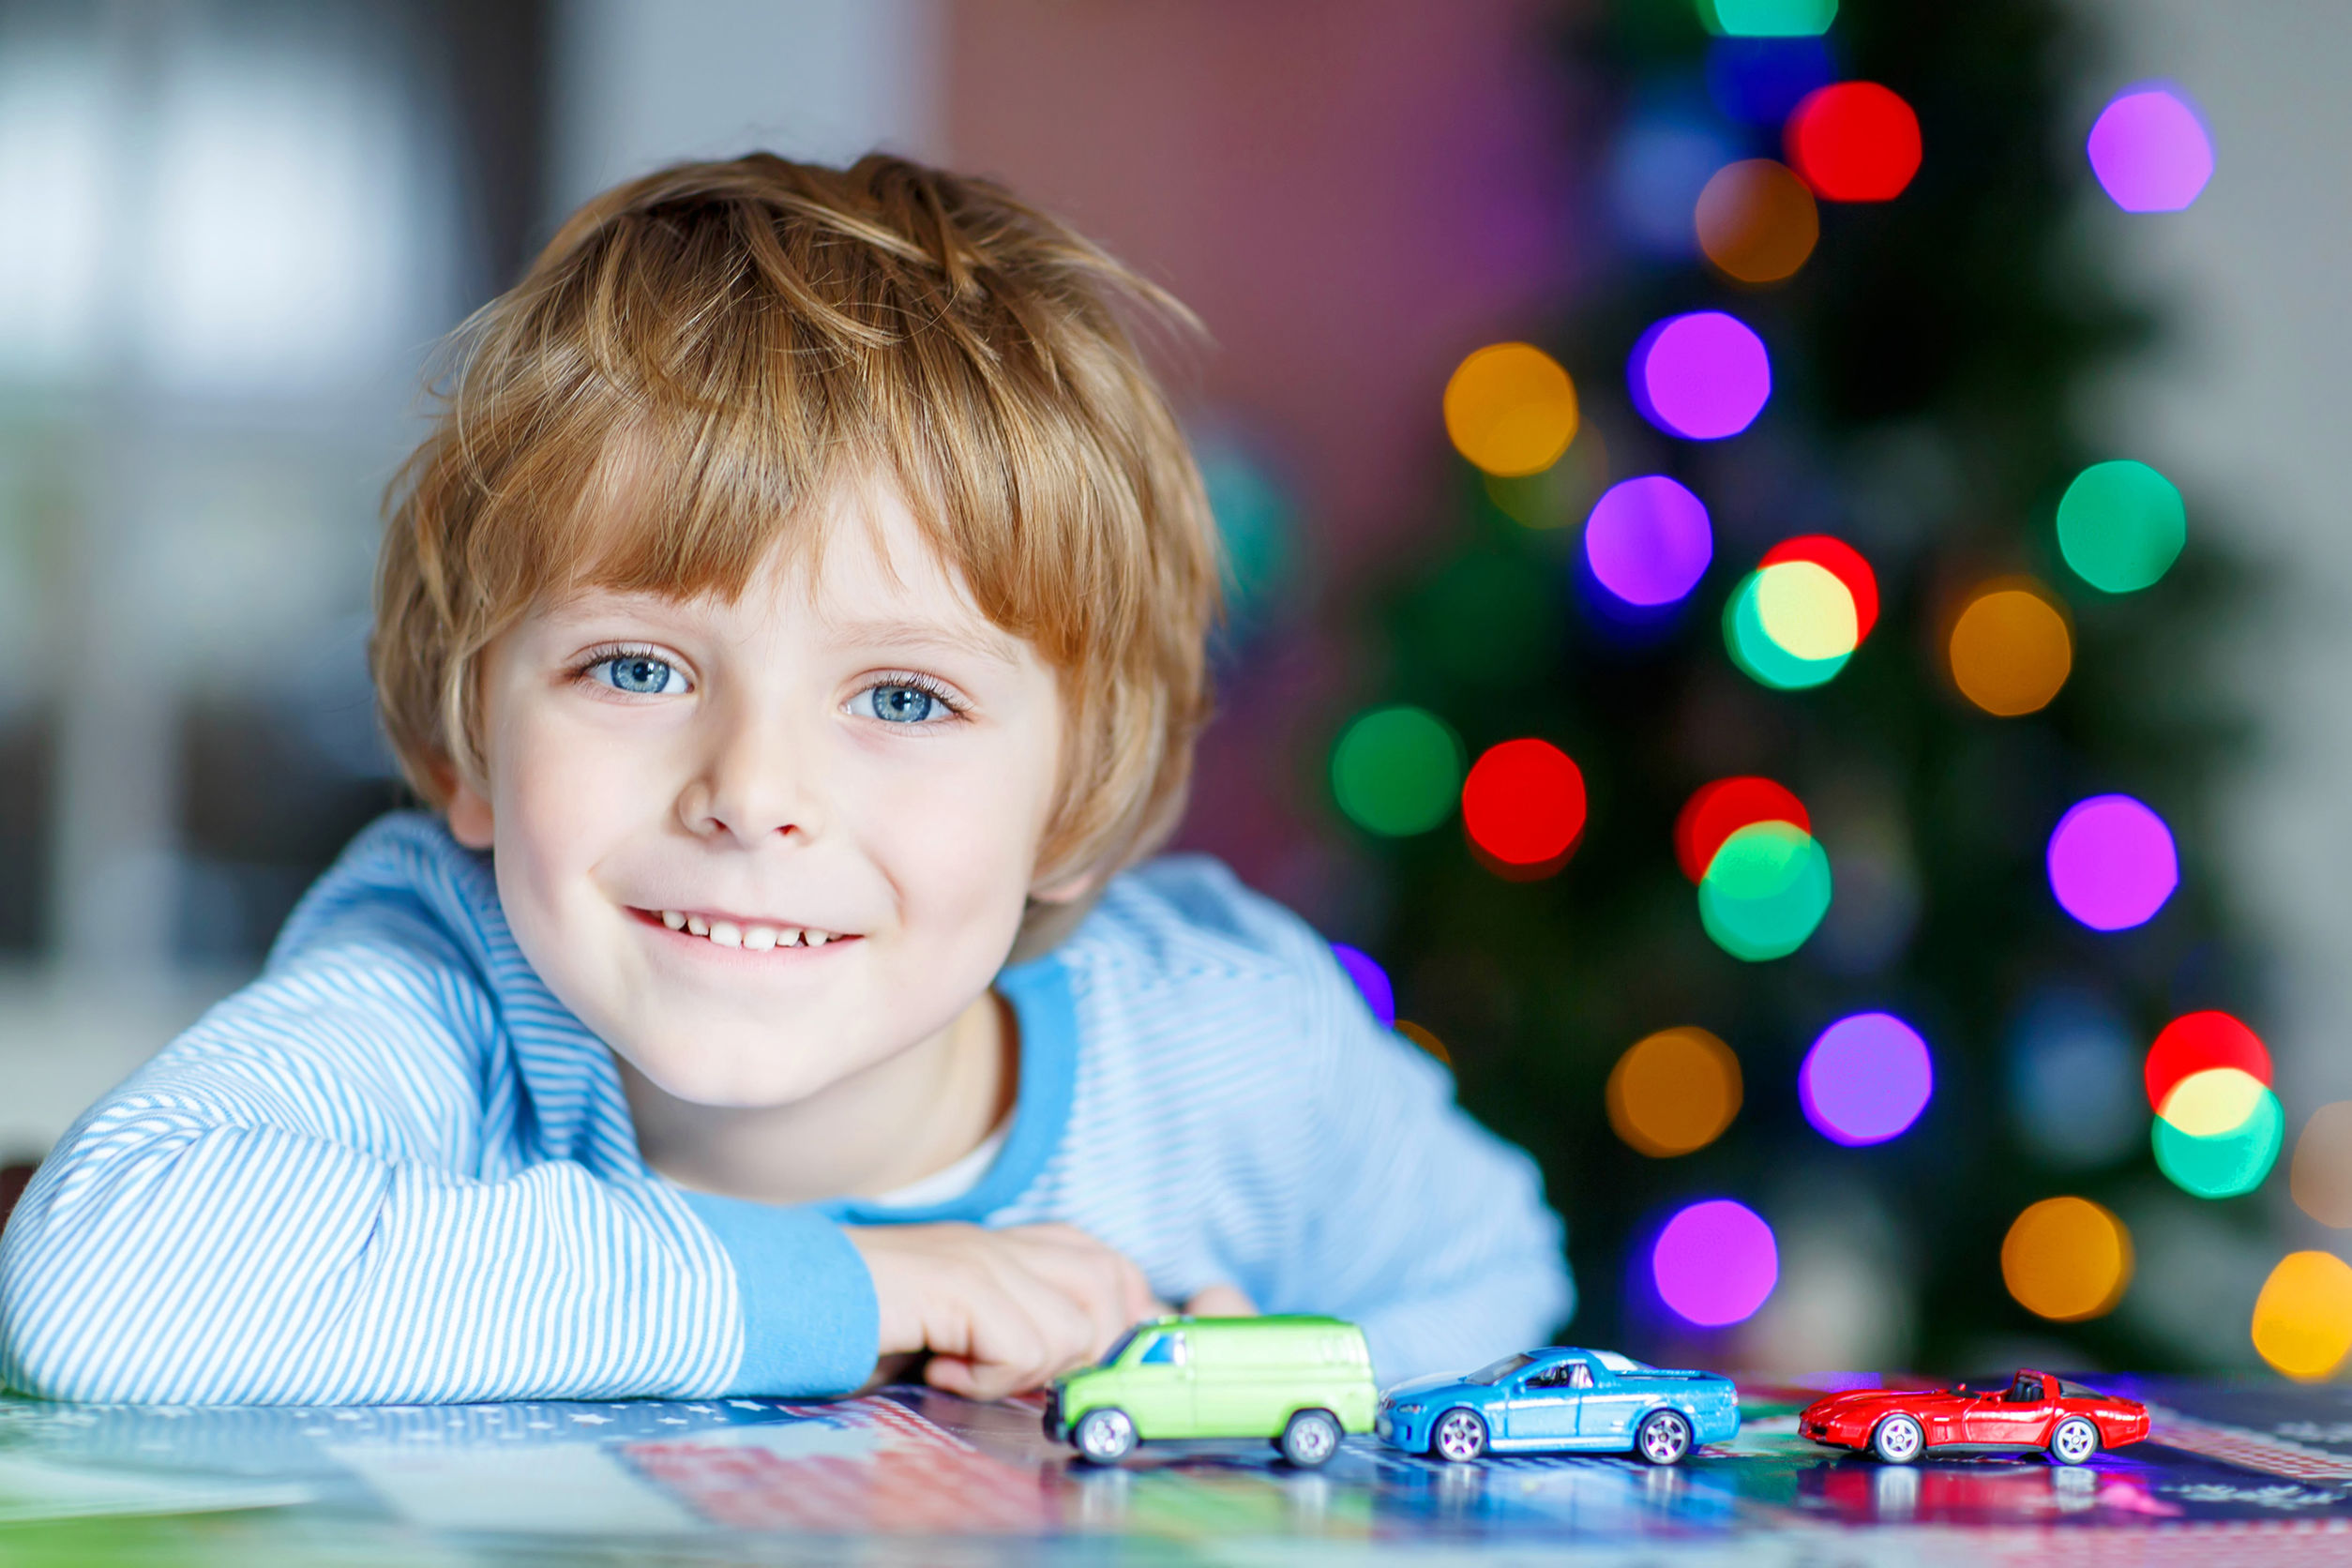 Adorable kid boy playing with cars and toys at home, indoor. funny child having fun with gifts. Colorful christmas lights on background. Family, holiday, kids lifestyle conceplt.